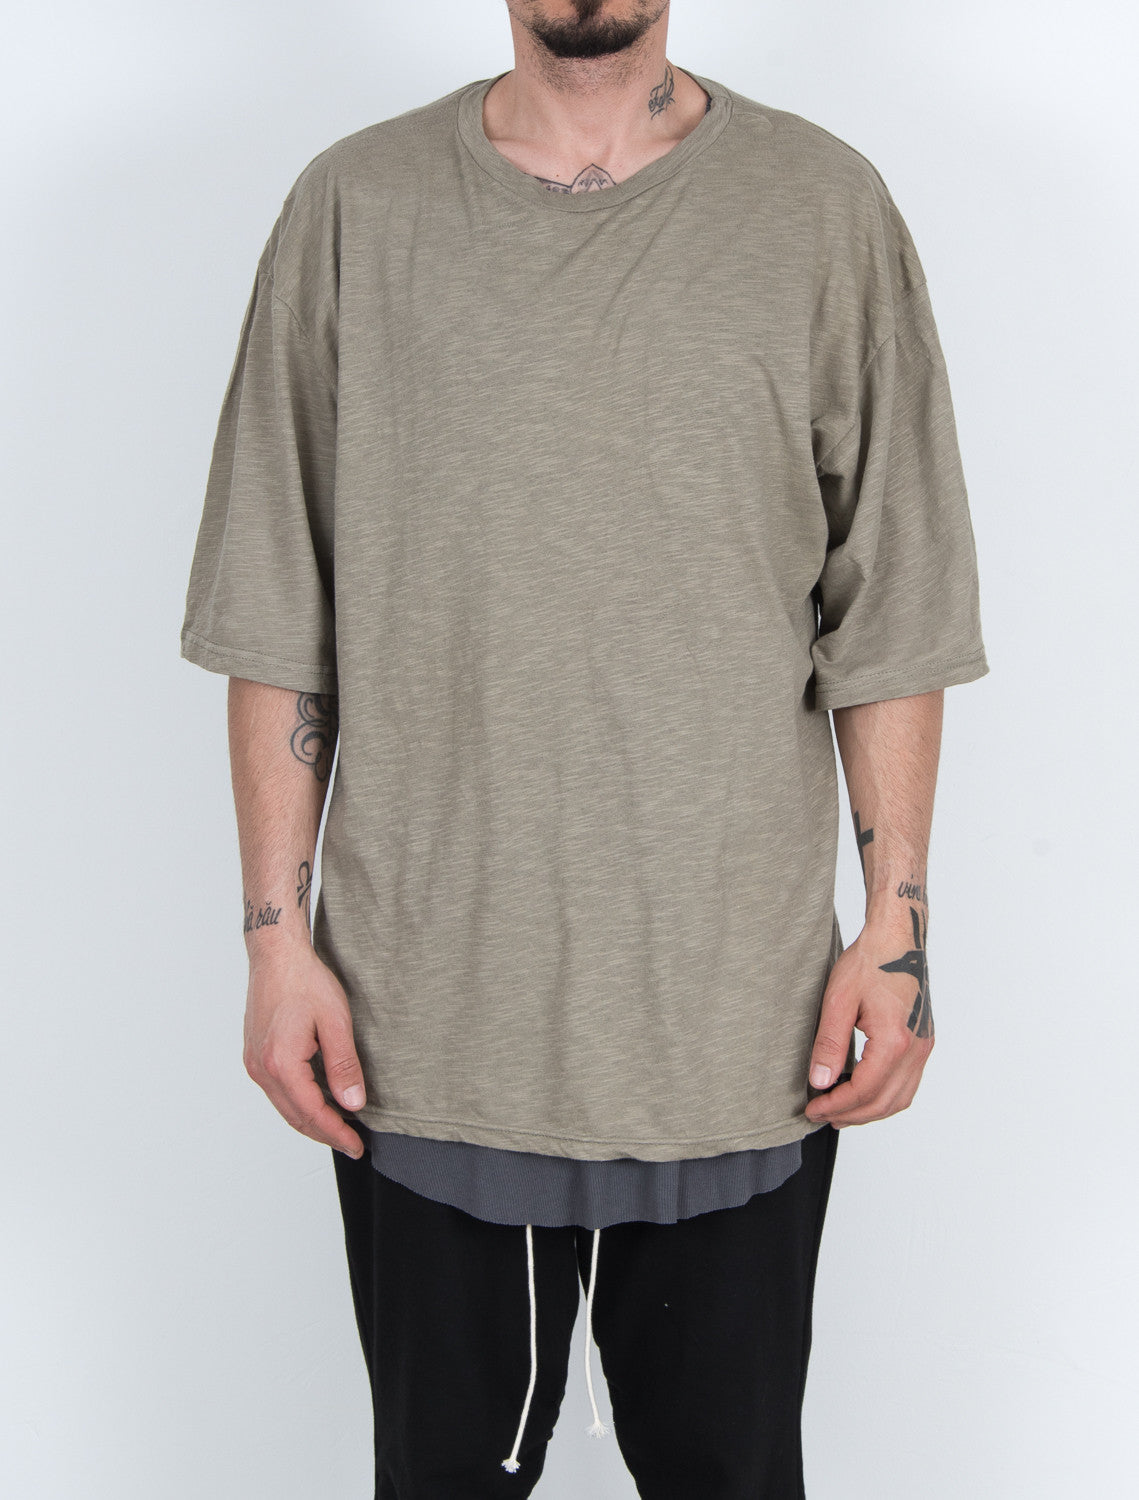 Khaki Box T-Shirts